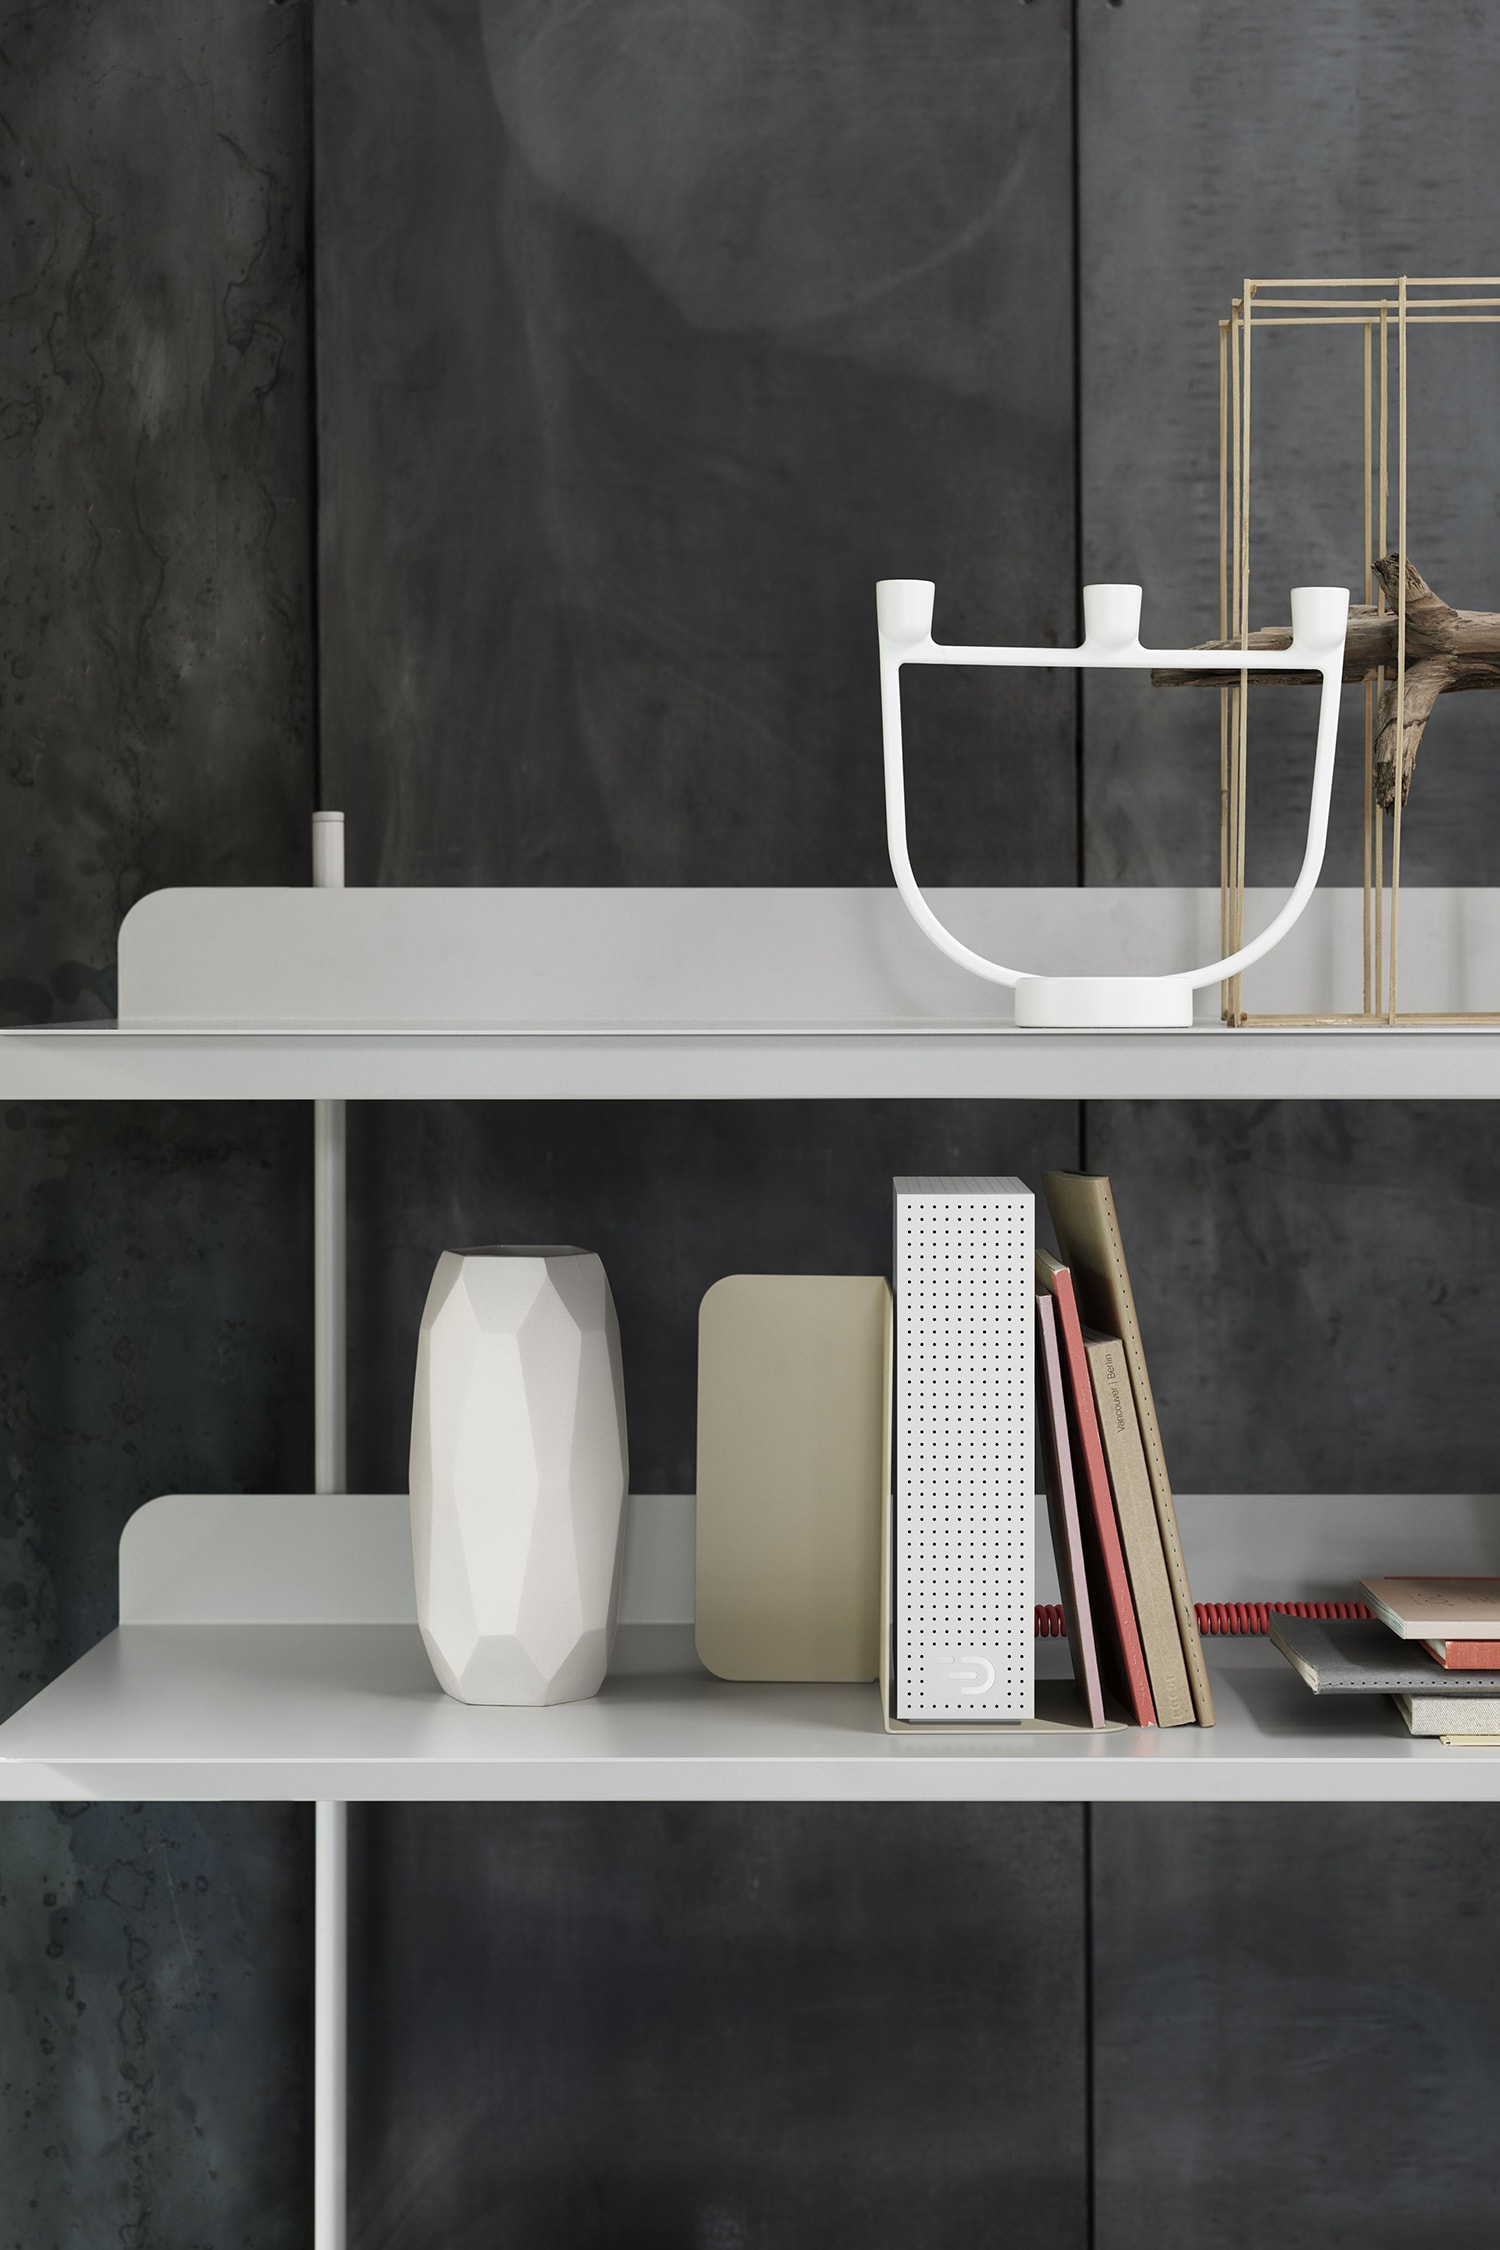 Front view of the Node one in white on a bookshelf beside other homeware objects such as a vase and candle holder. The casing is perforated with small holes for venting and shows the DADI logo.